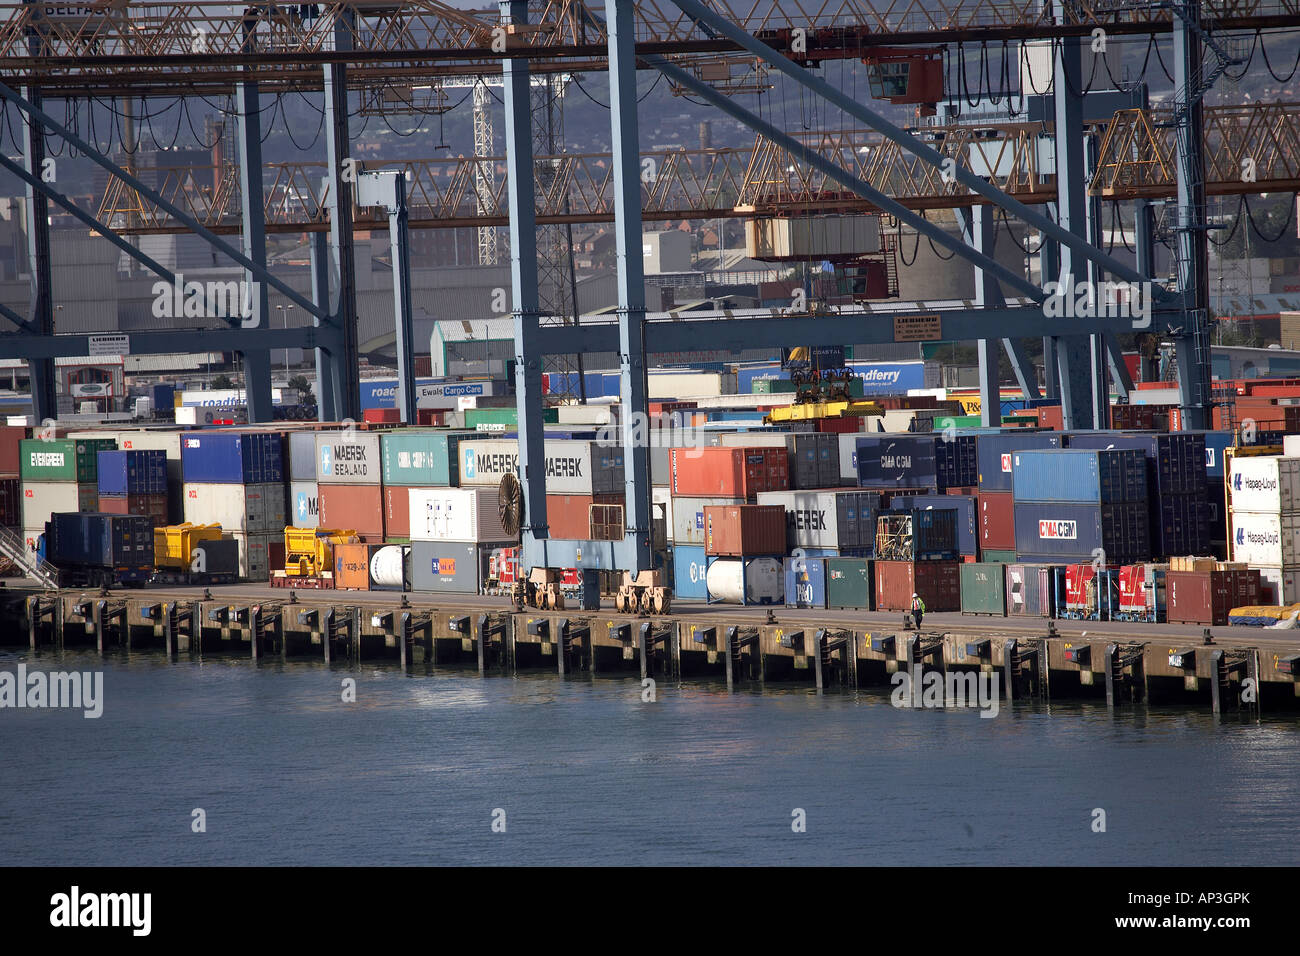 Containers stacked in Port of Belfast Ireland UK - Stock Image